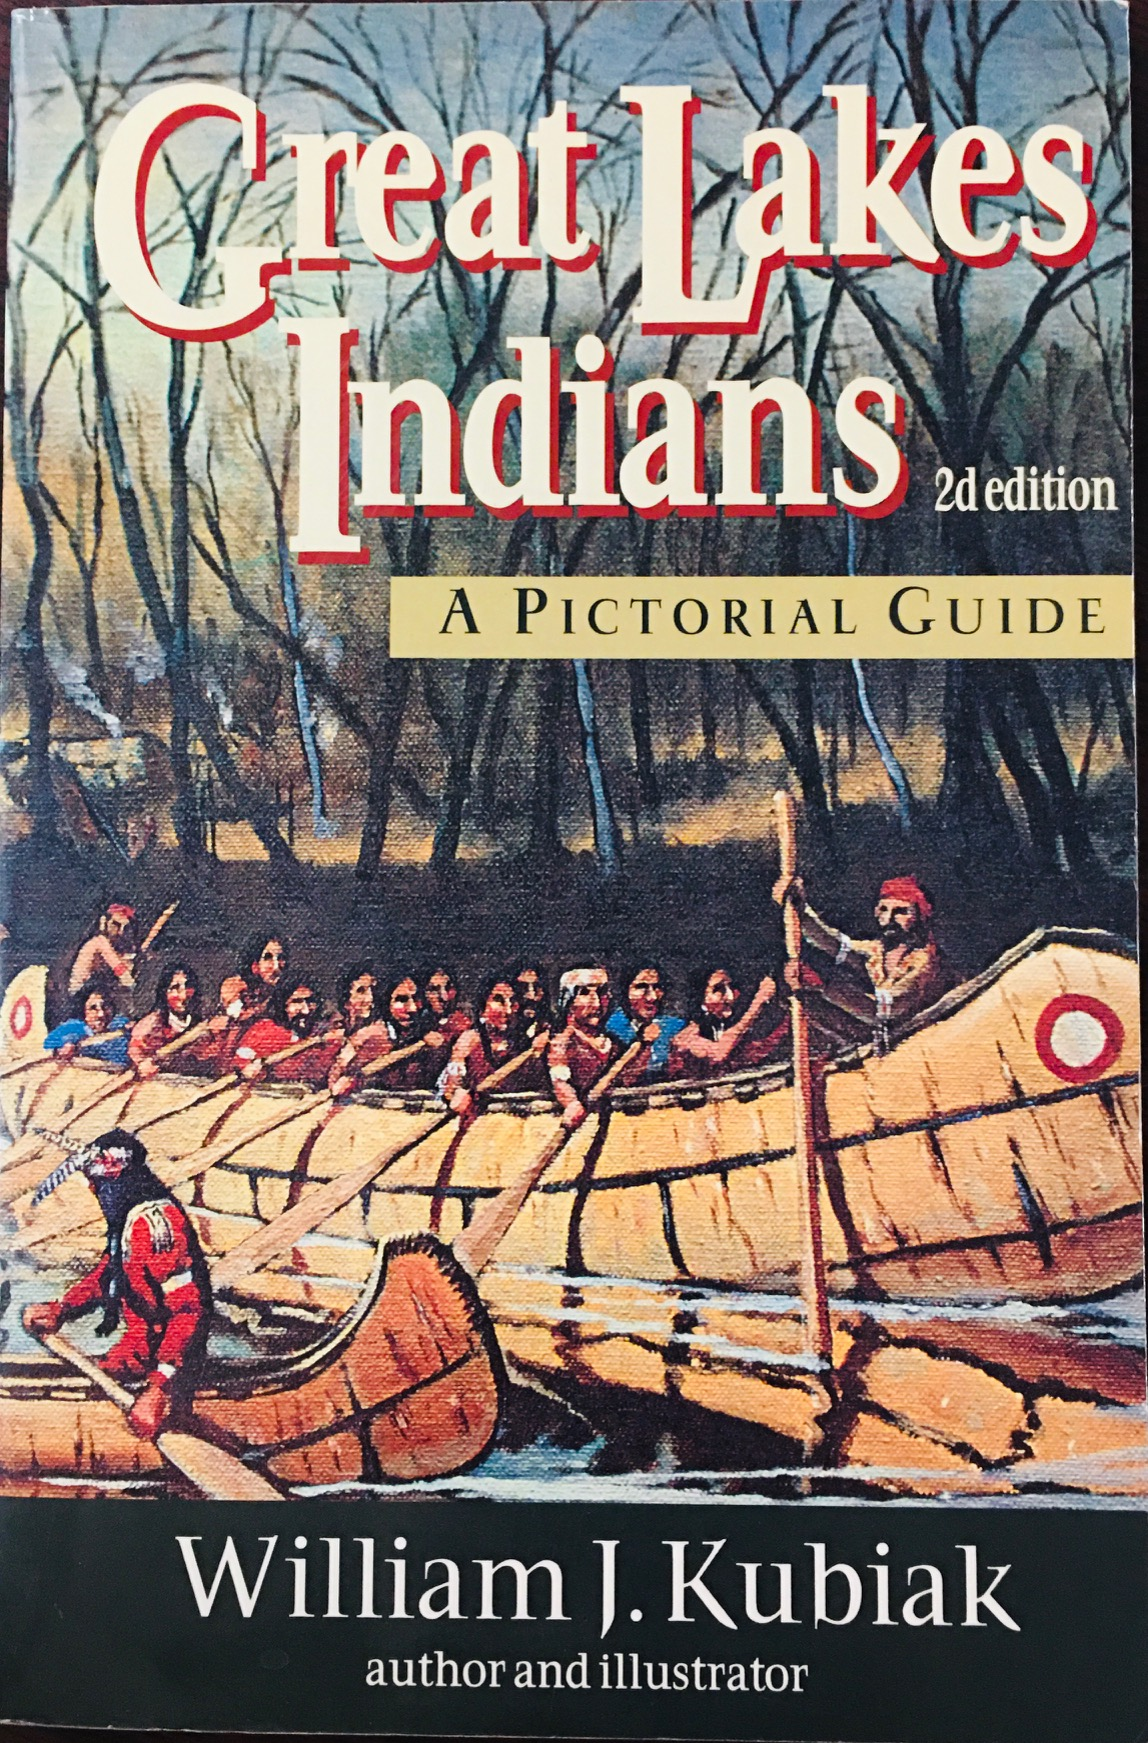 Image for Great Lakes Indians: A Pictorial Guide - 2nd Edition